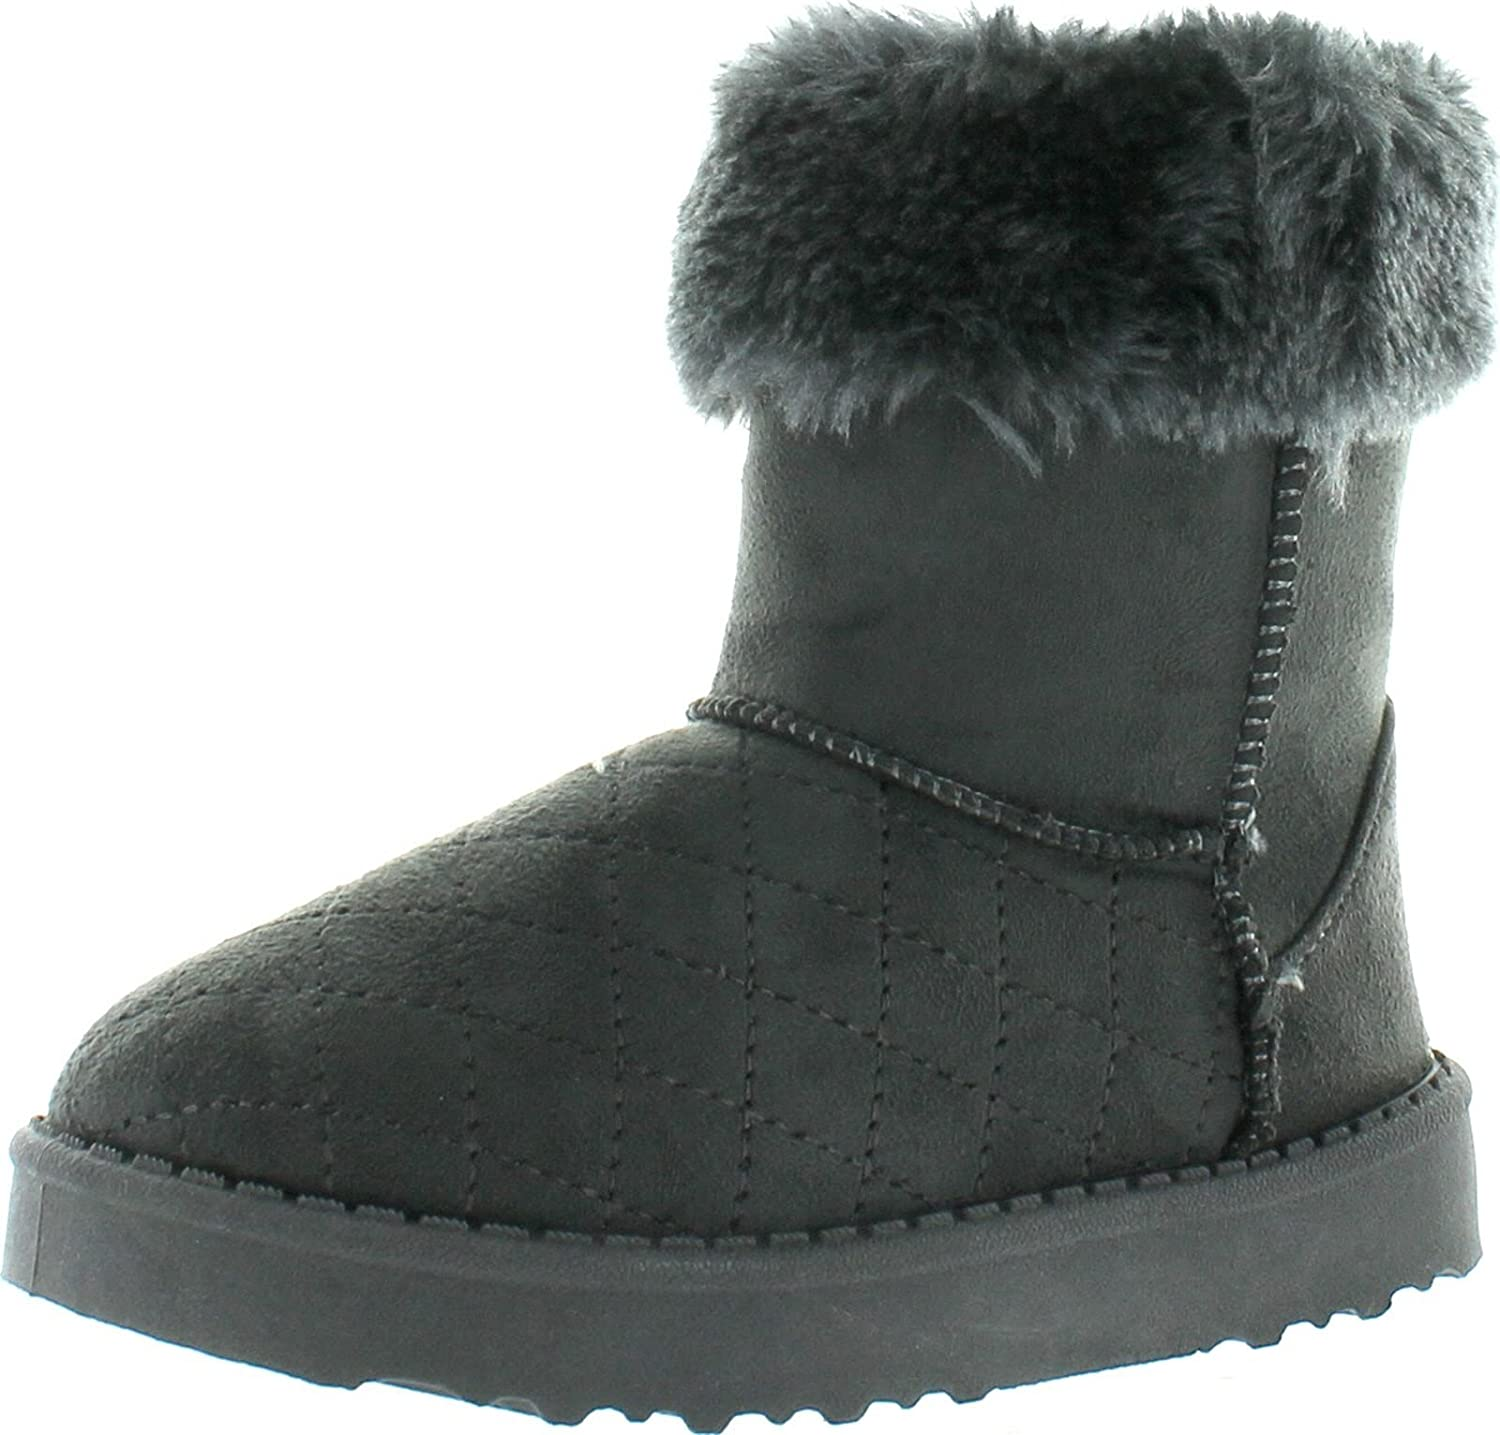 Via Pinky Coco-24F Kids Big Girls Fashion Slip On Ankle Booties Winter Shoes